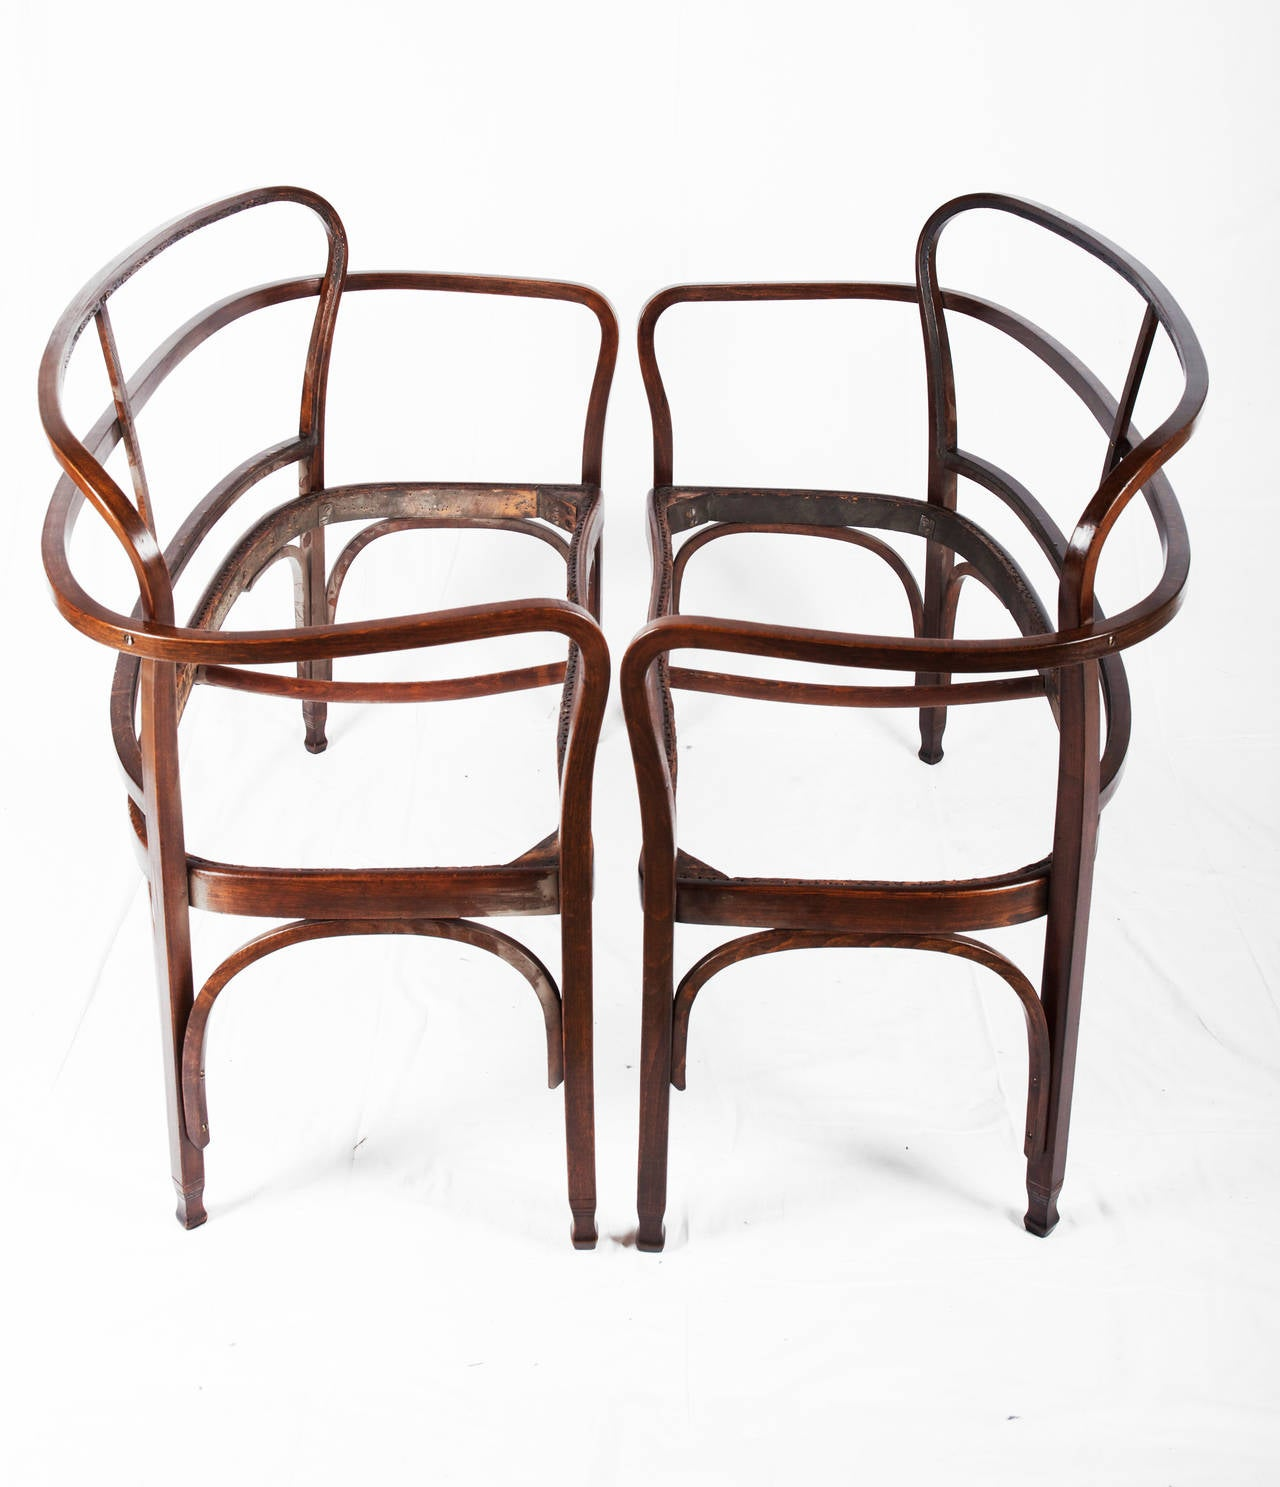 An exquisite and very seldom Vienna Secession bentwood settee by Gustav Siegel.